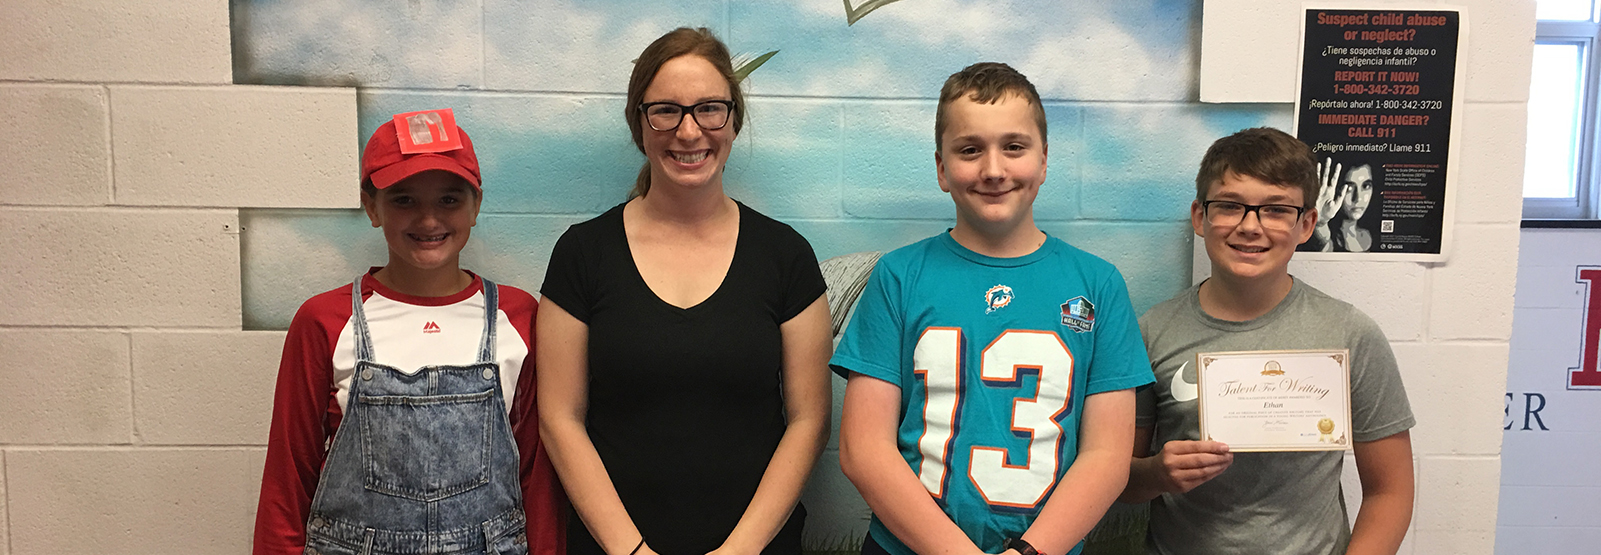 student award winners for a national writing contest pose for a picture